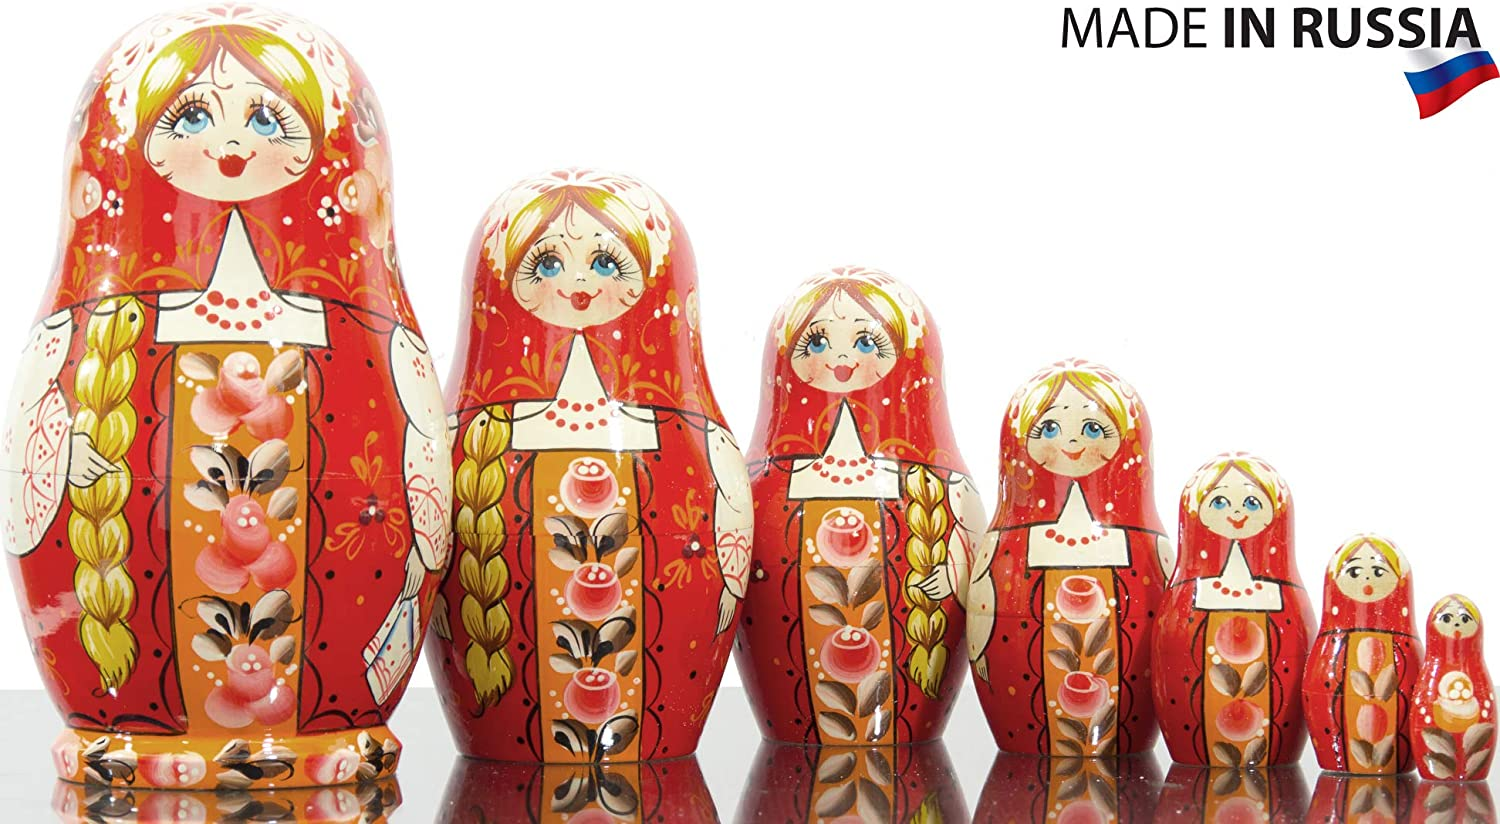 Russian Nesting Doll  Kirov  VJATKA  Hand Painted in Russia  Medium Size  Wooden Decoration Gift Doll  Matryoshka Babushka (Design A, 6.5``(7 Dolls in 1))